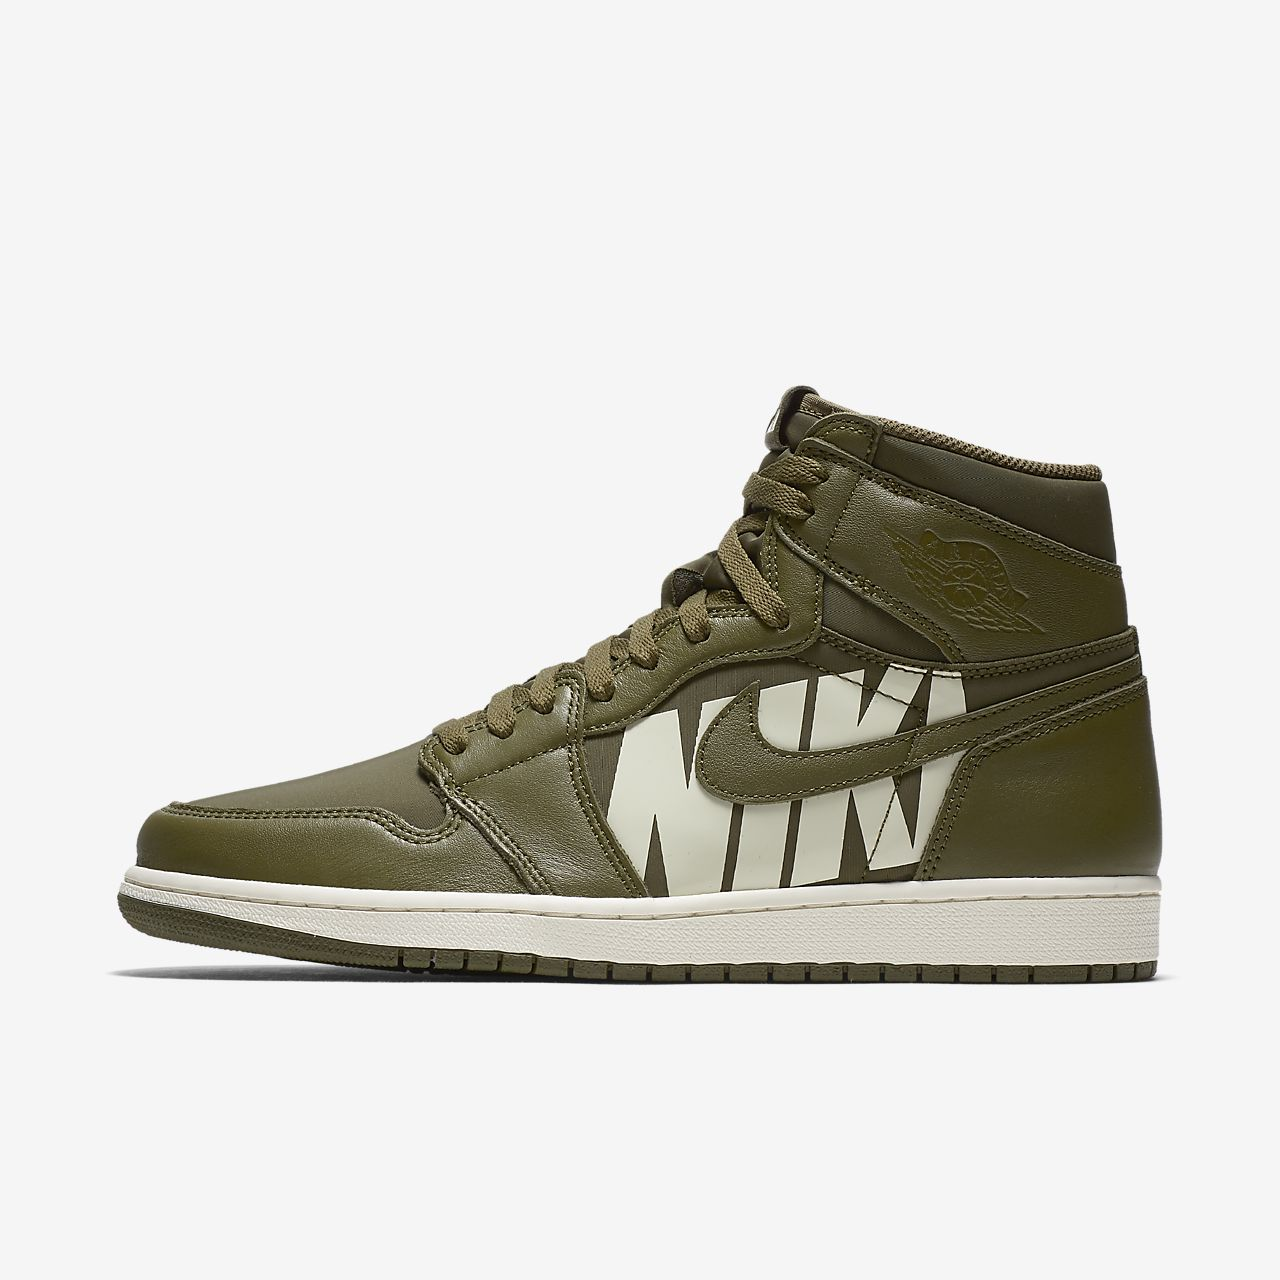 1f72dfcb966 Air Jordan 1 Retro High OG Shoe. Nike.com NZ